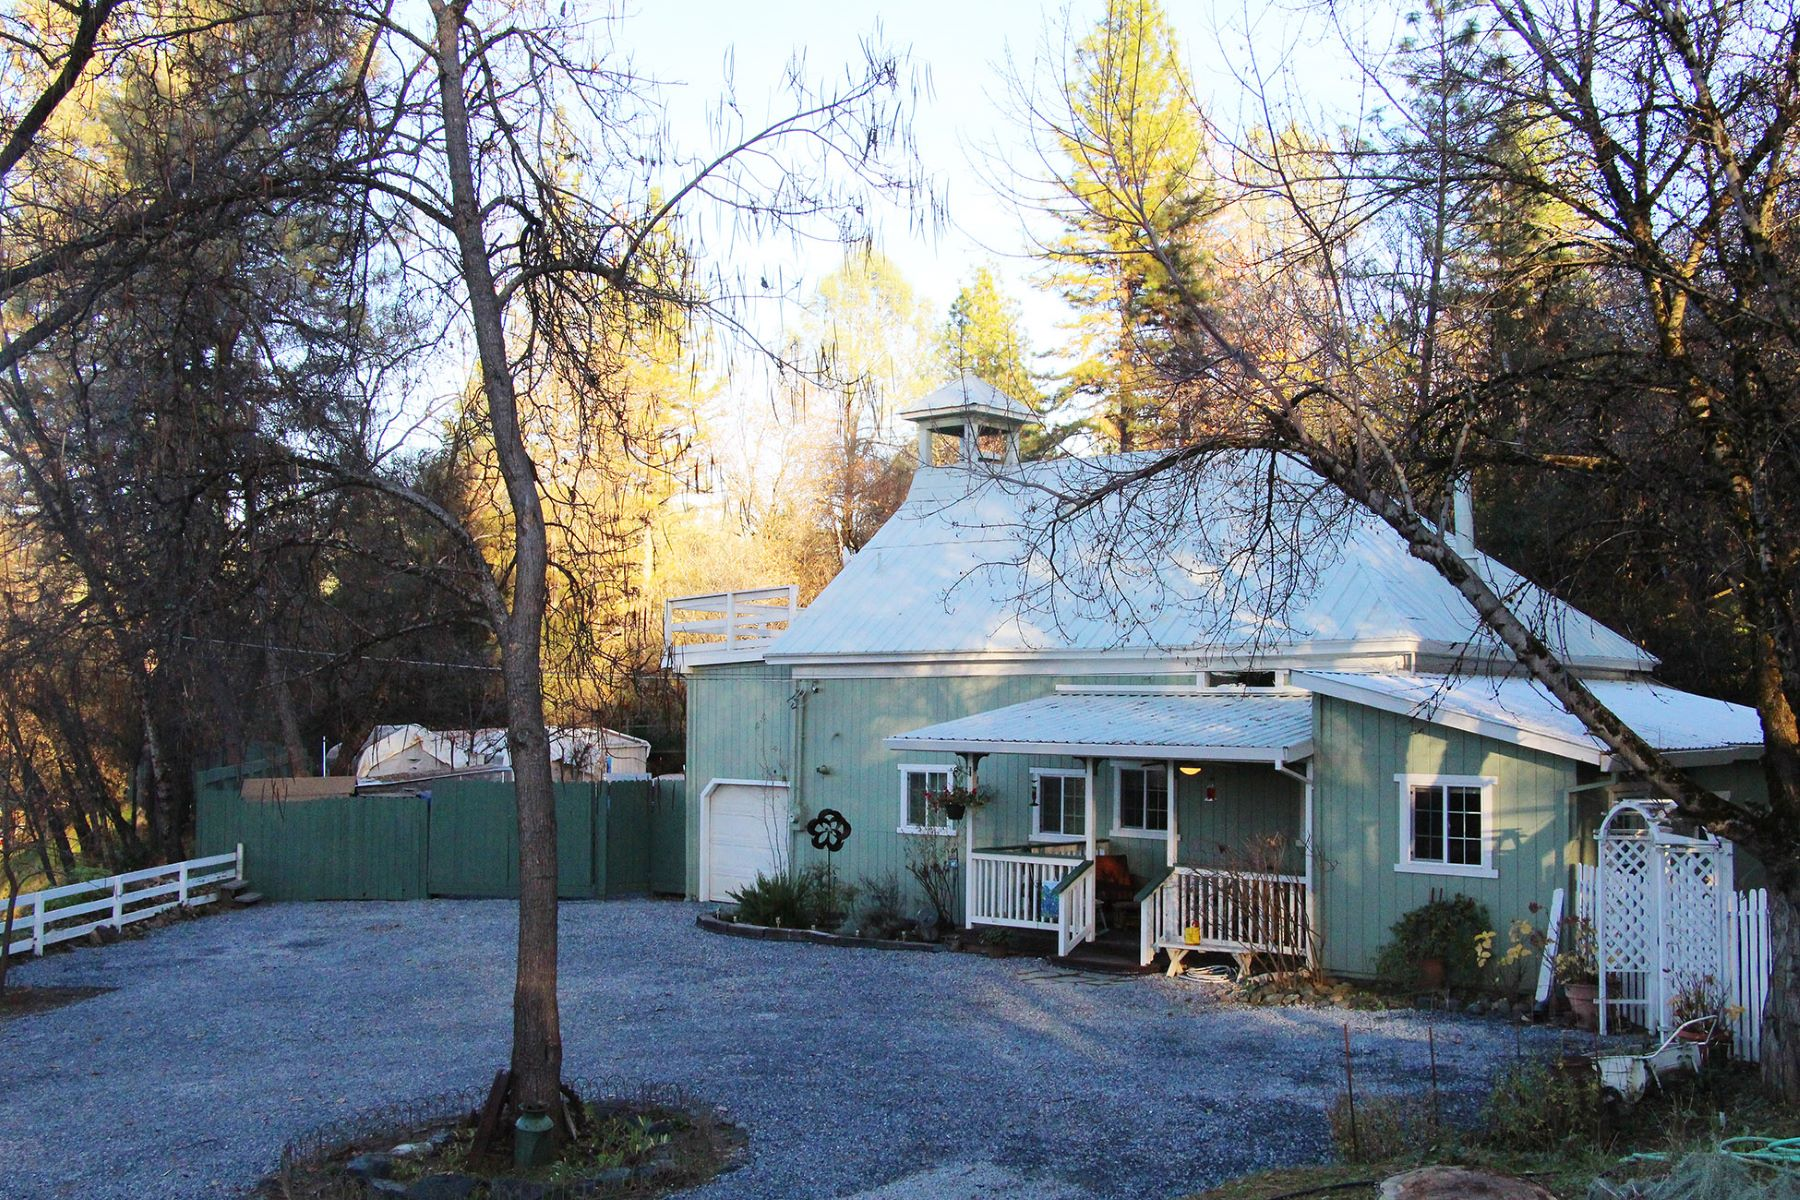 Single Family Home for Sale at Classic Country Charmer 4820 Sand Ridge Road Placerville, California 95667 United States